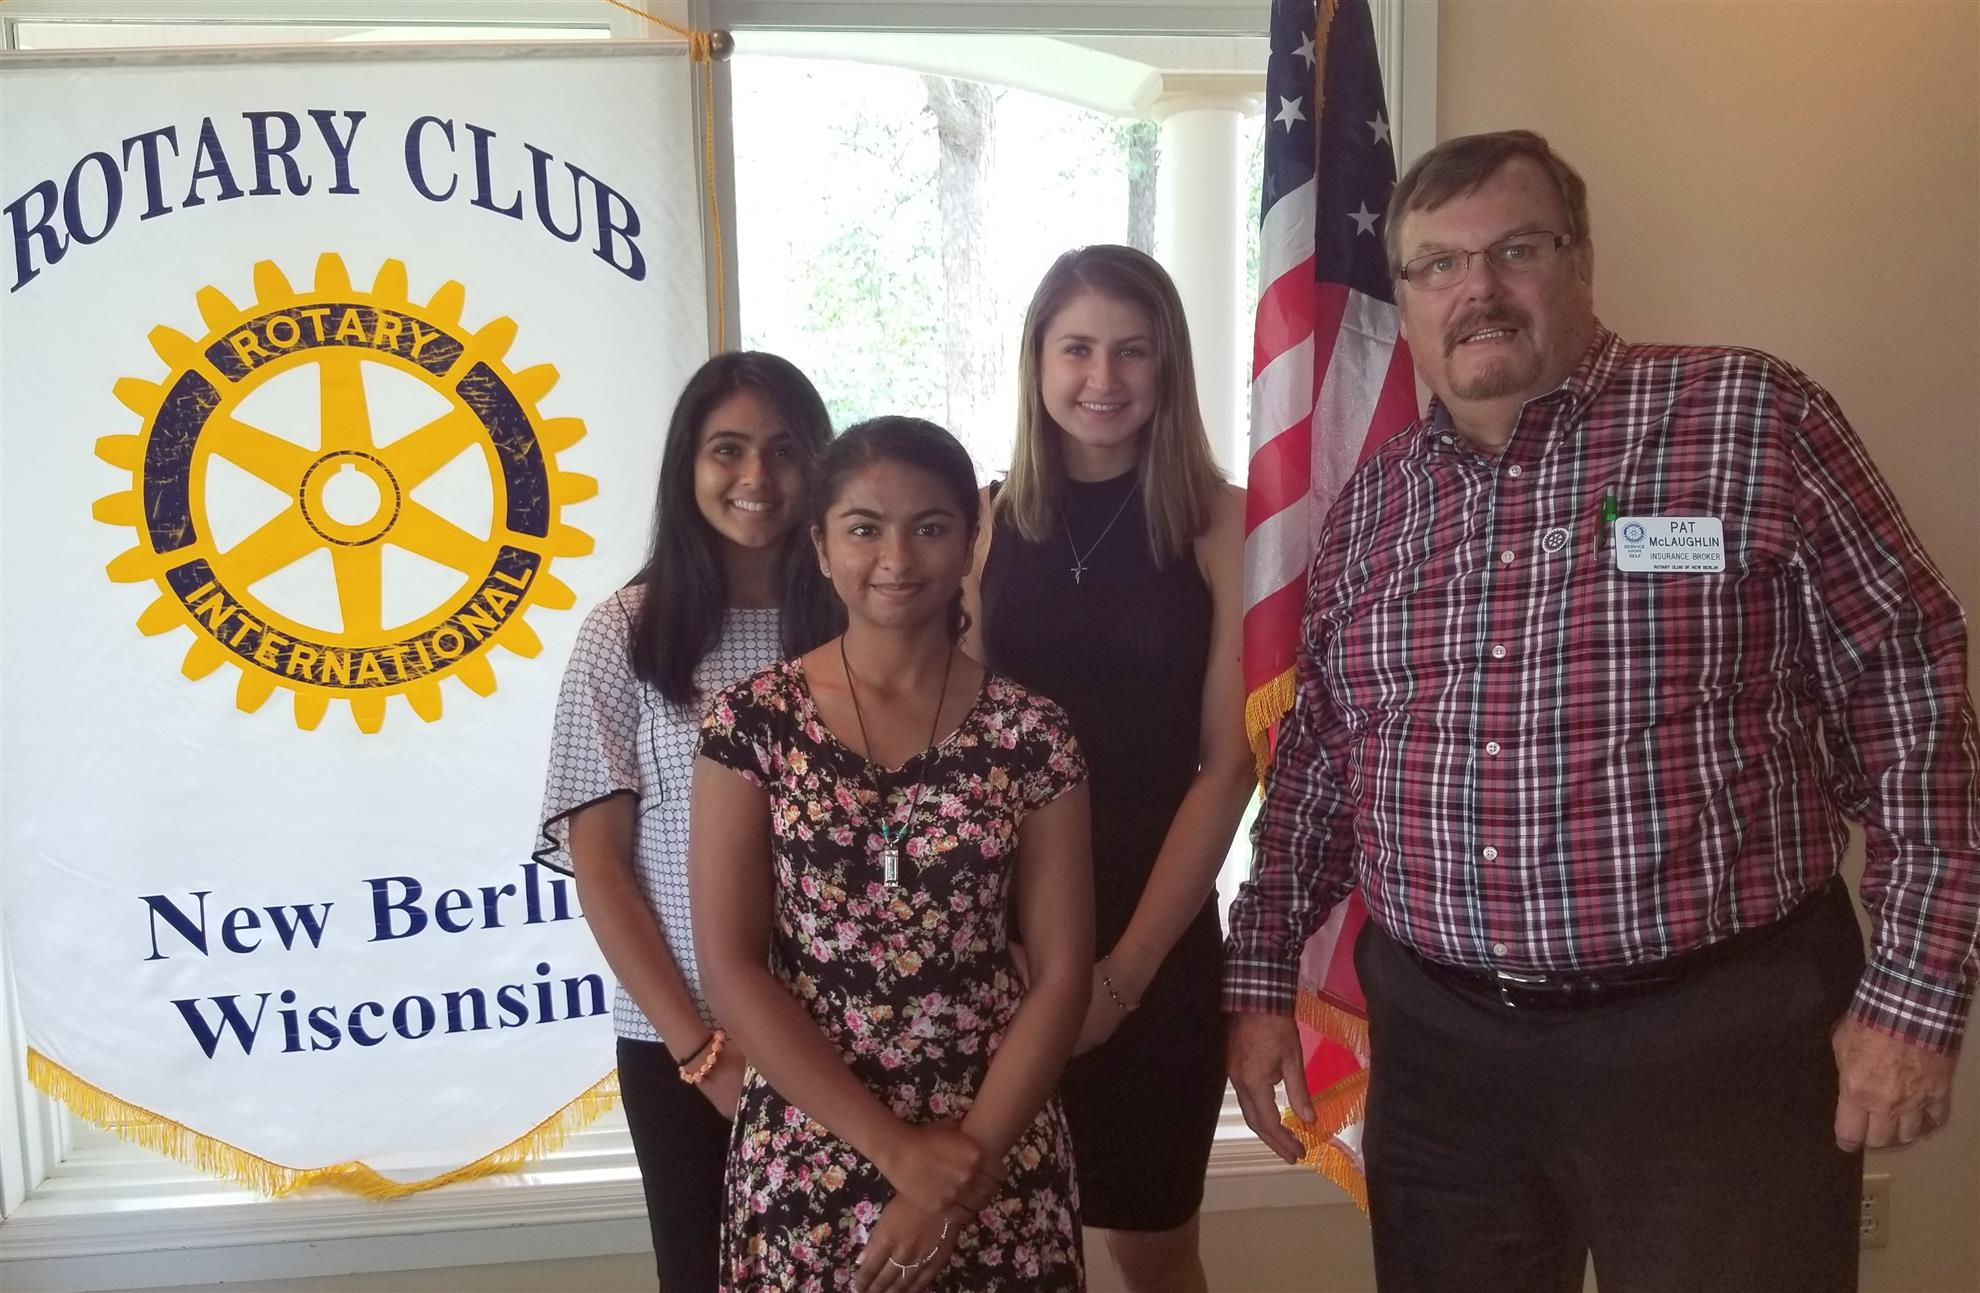 New Berlin Rotary, Rotary Club of New Berlin, World Affairs Seminar